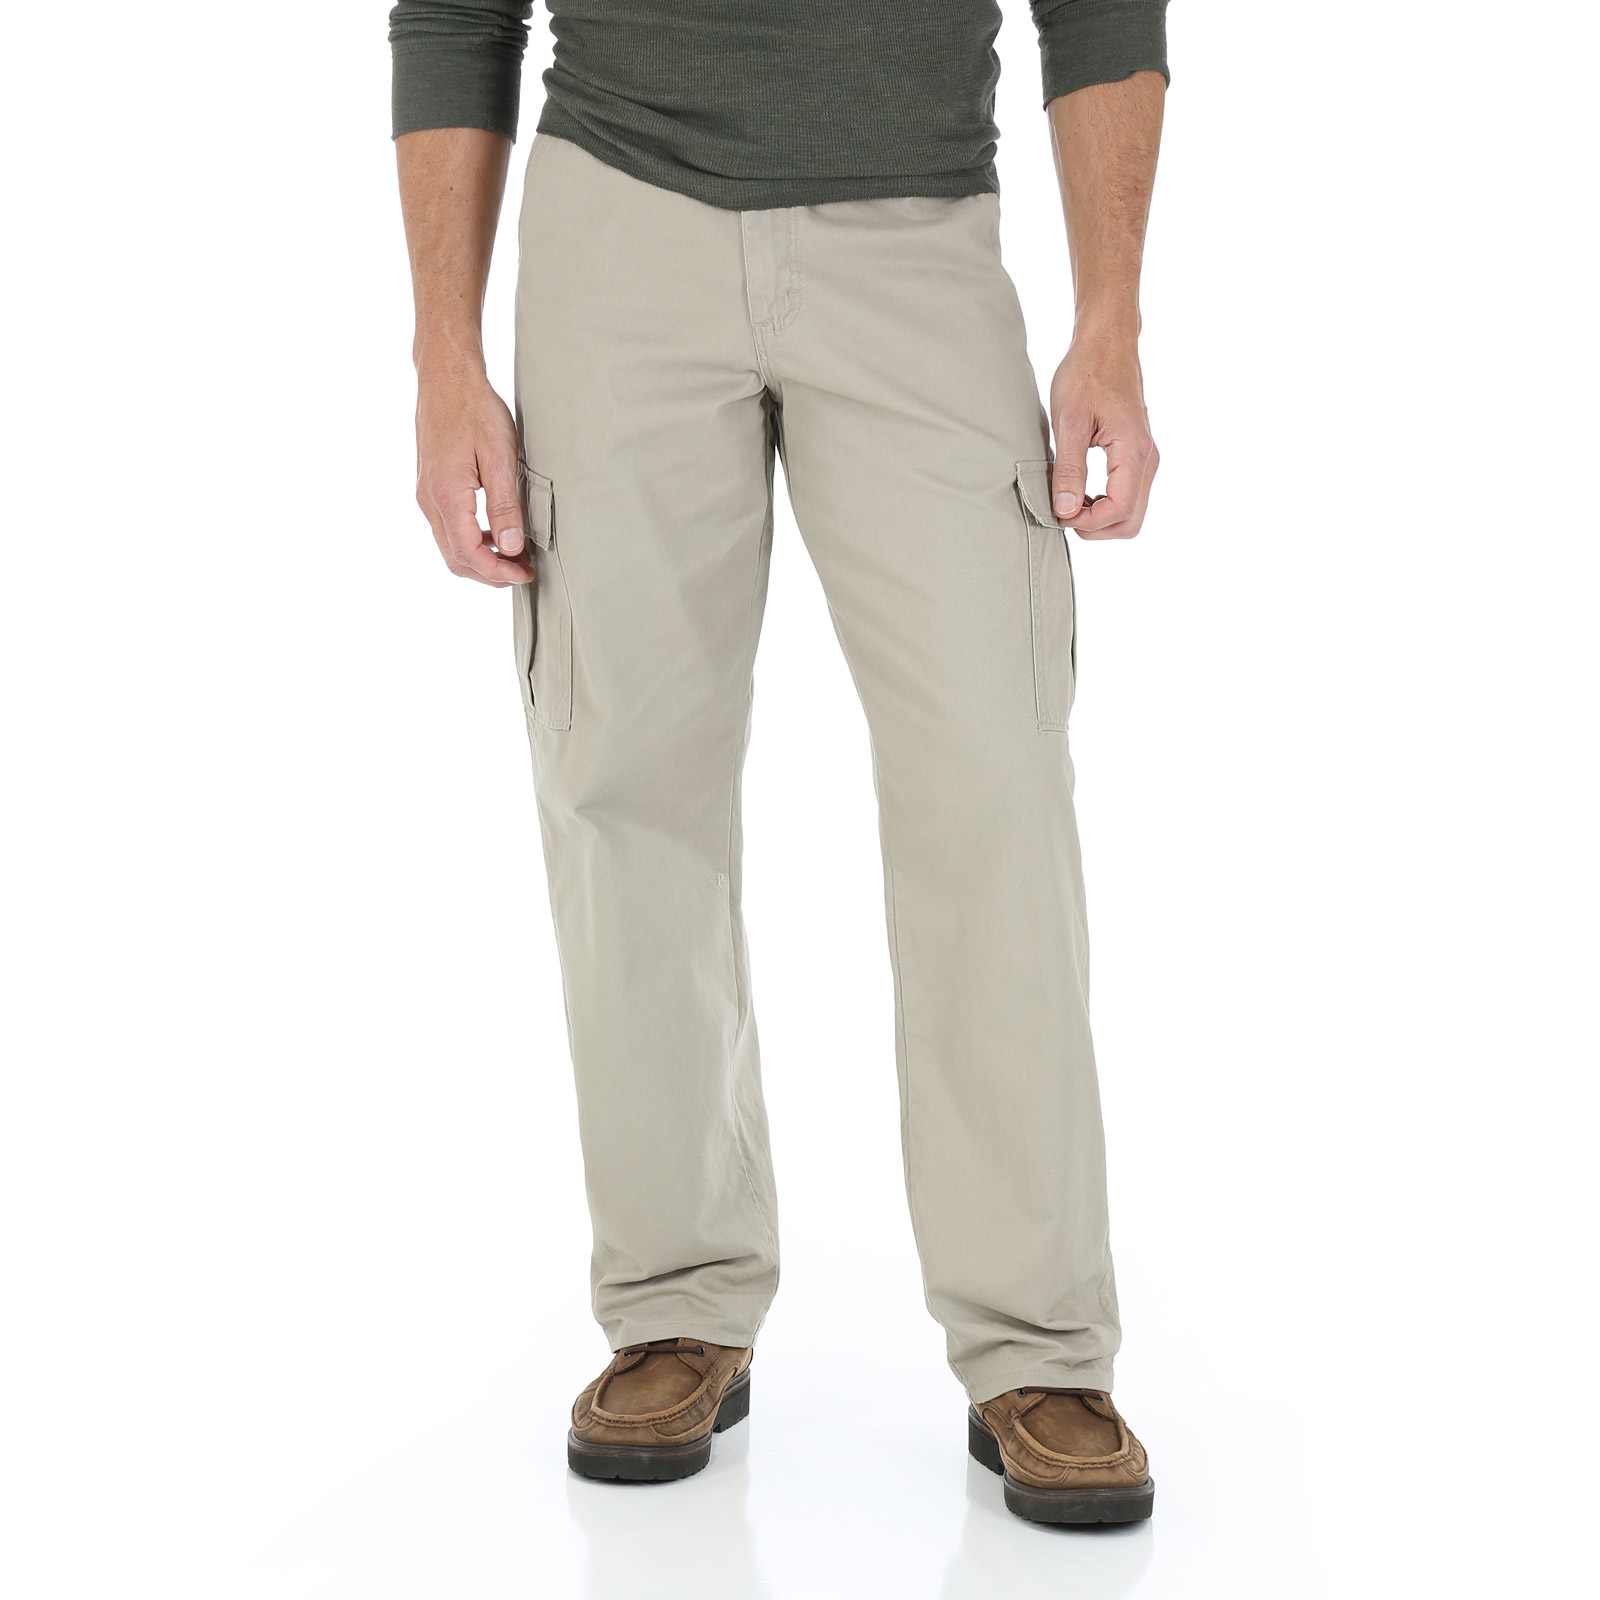 Long flex basic twill and rinse denim stretch pants in solid colors. Levi's Men's Straight Chino Twill Pant. by Levi's. $ - $ $ 34 $ 59 50 Prime. FREE Shipping on eligible orders. Some sizes/colors are Prime eligible. out of 5 stars Carhartt Men's Relaxed Fit Rugged Work Khaki Pant.